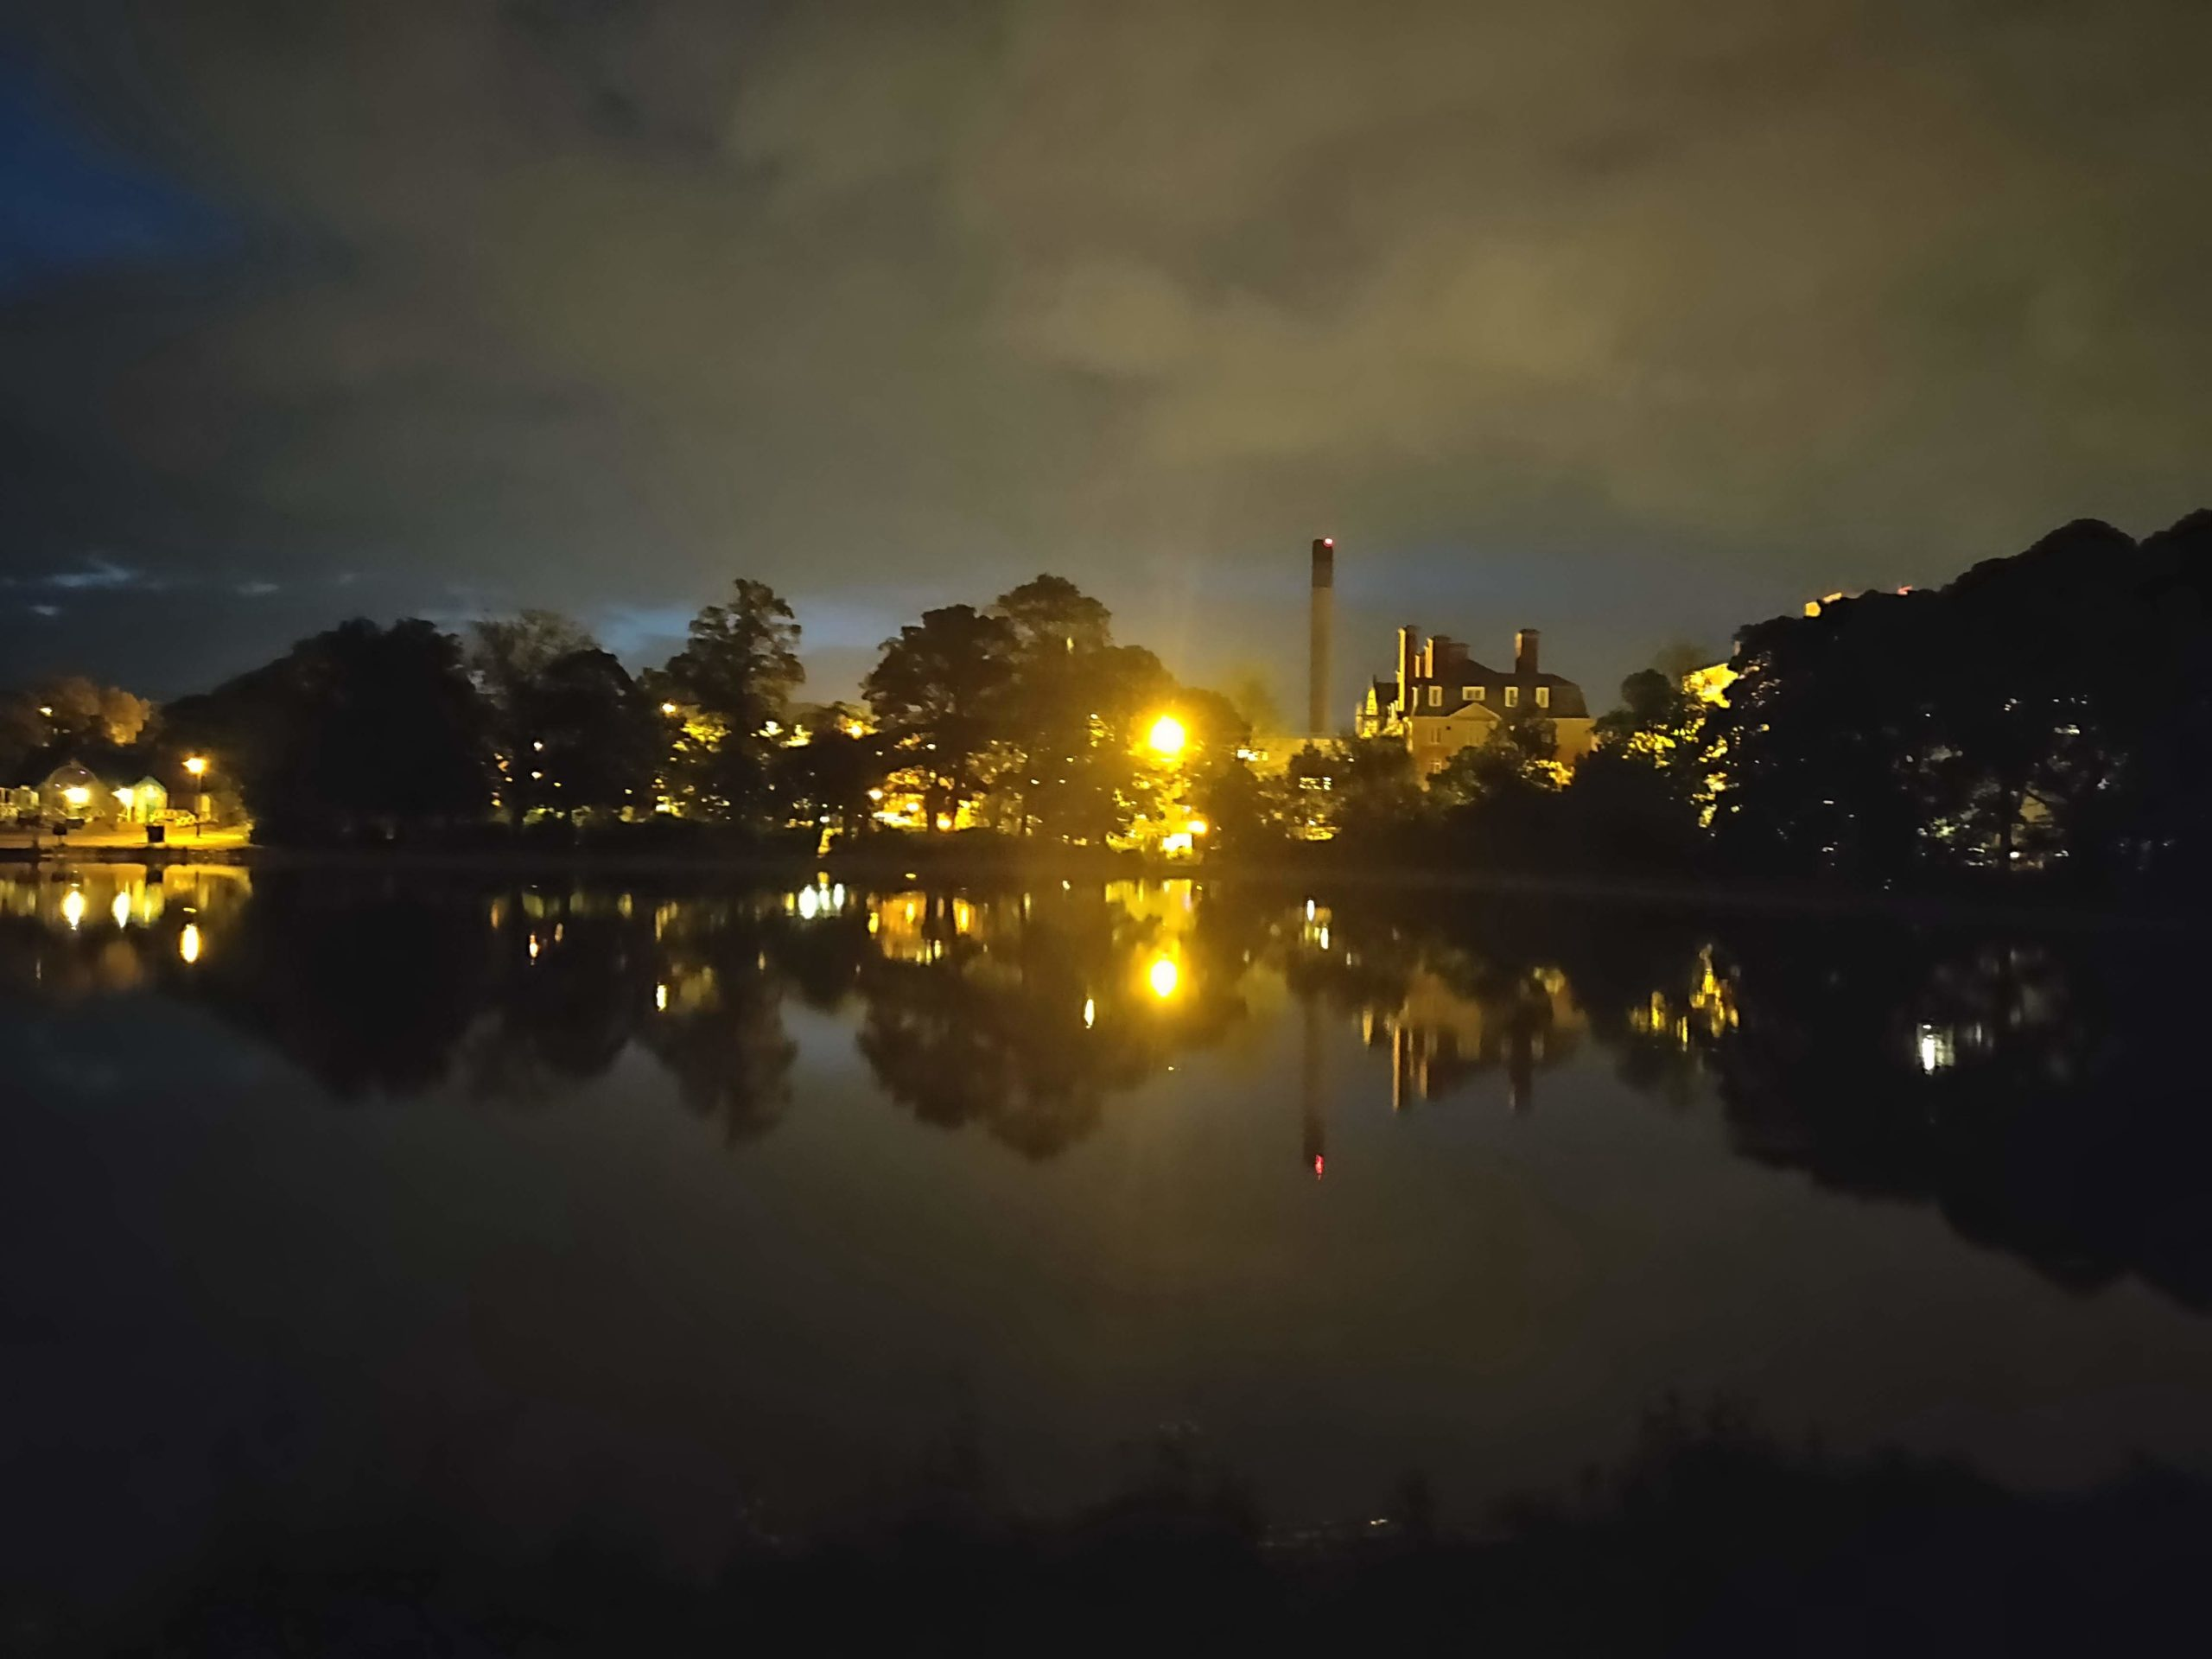 Leazers Park at night